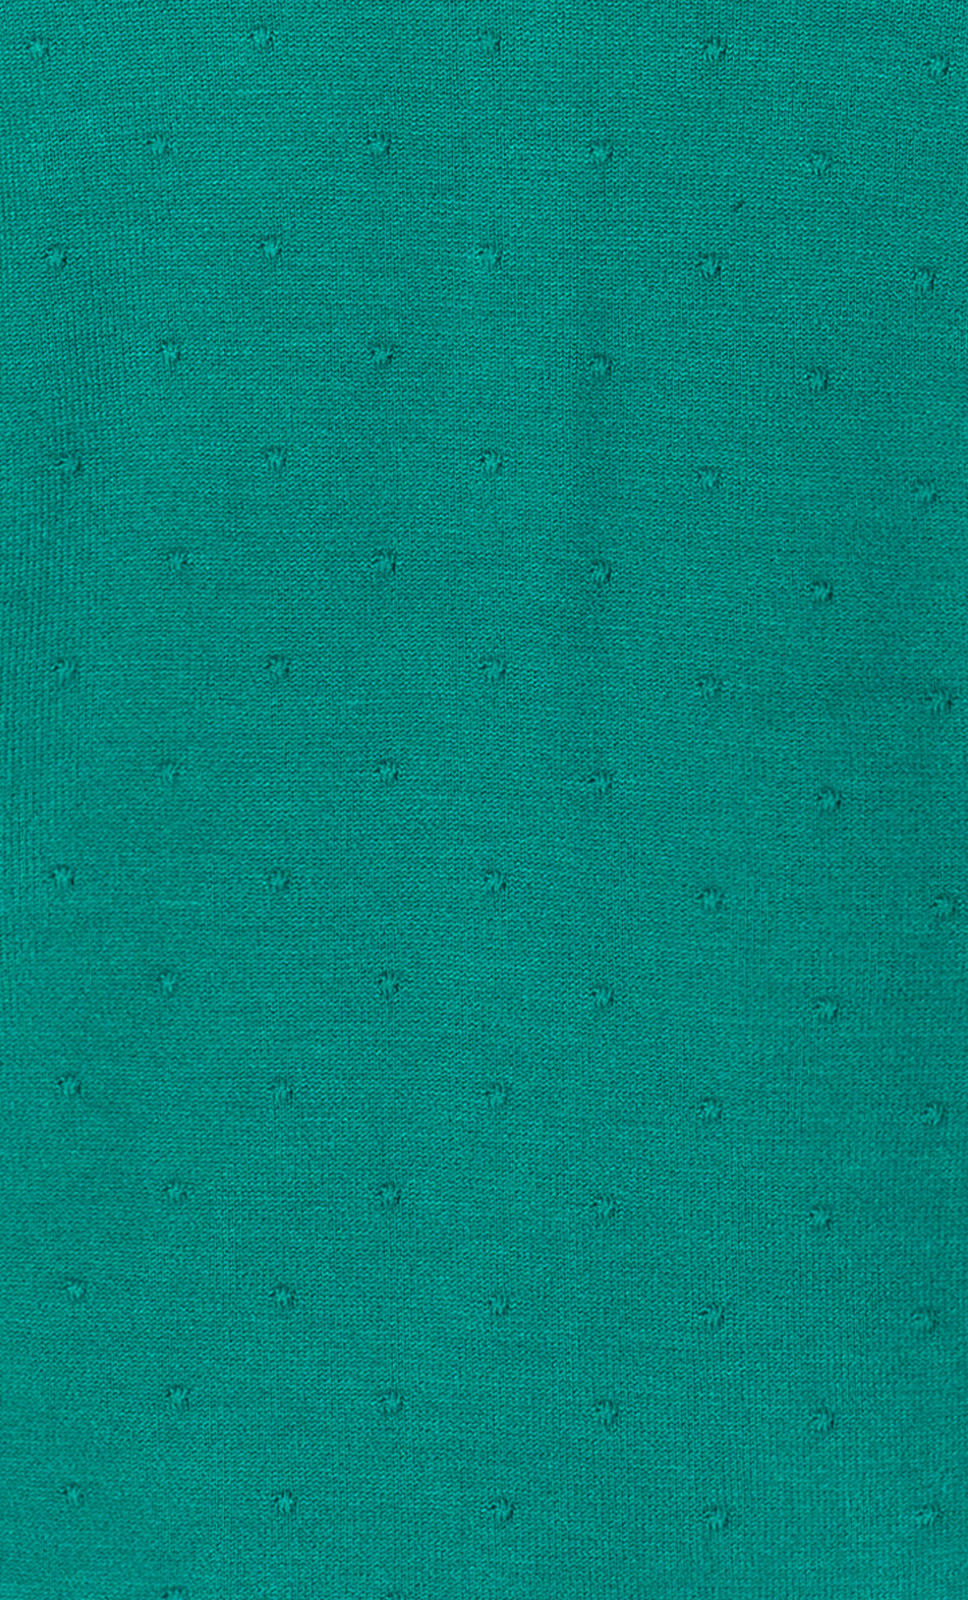 Droplet-Bright-Turquoise